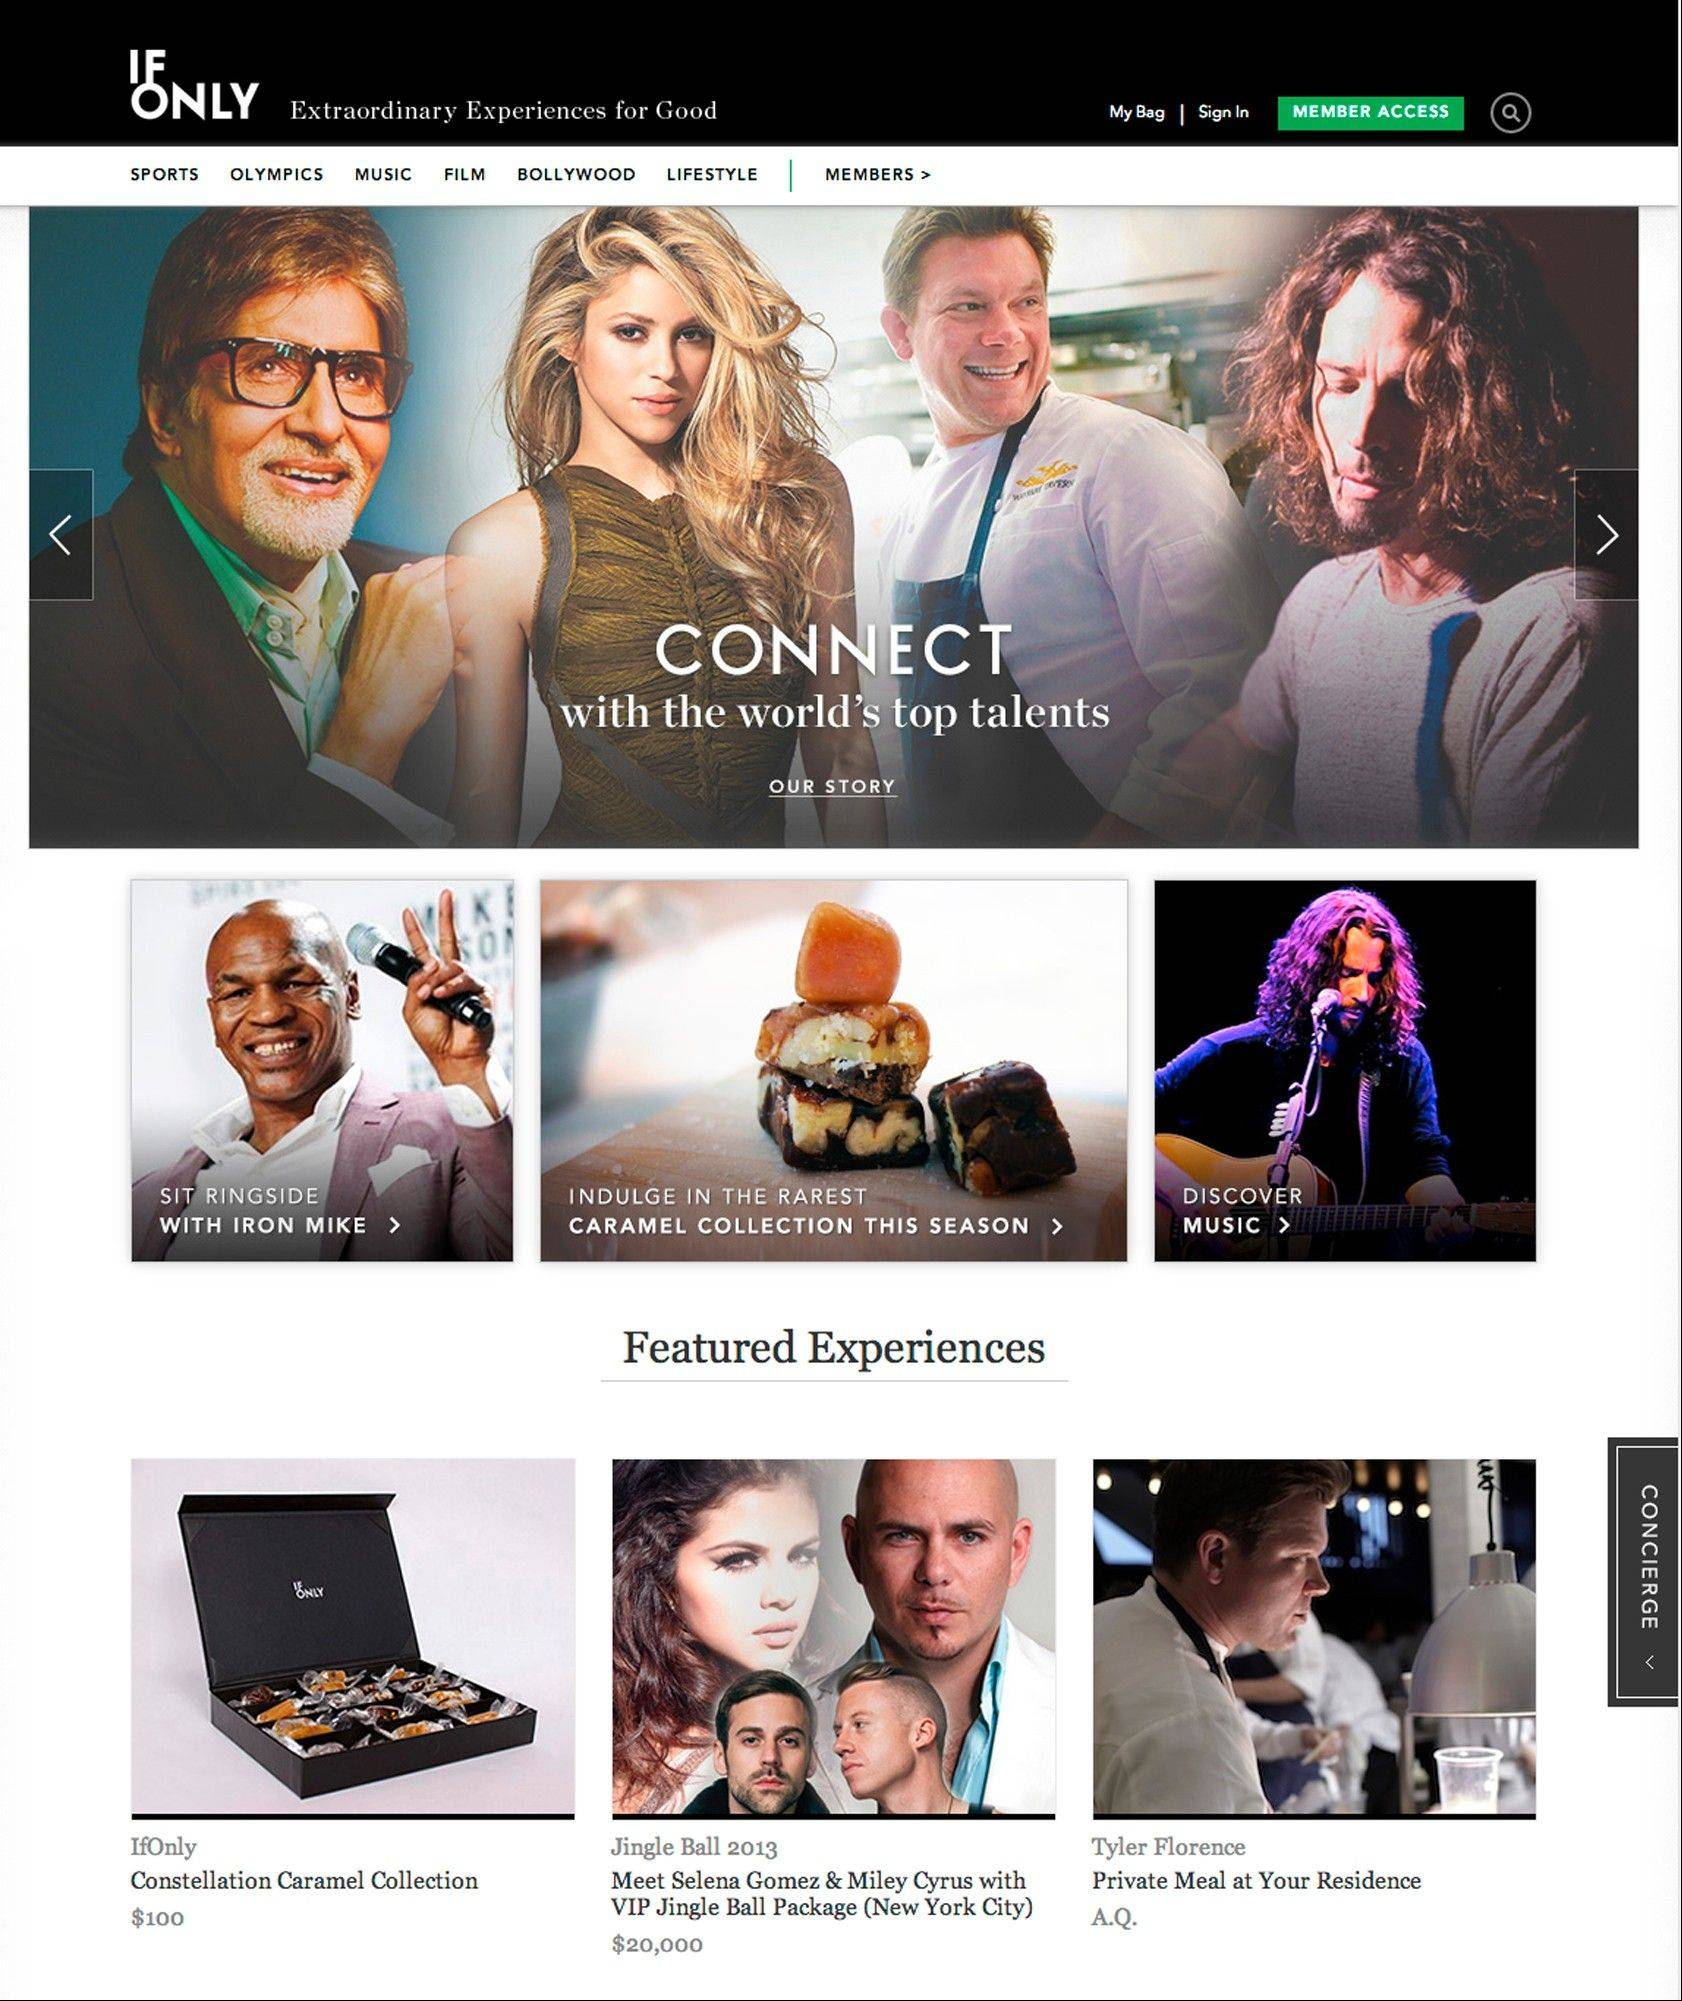 IfOnly.com is a website where you can buy encounters with stars in the culinary, sports and entertainment world, with part of the proceeds going to charity.